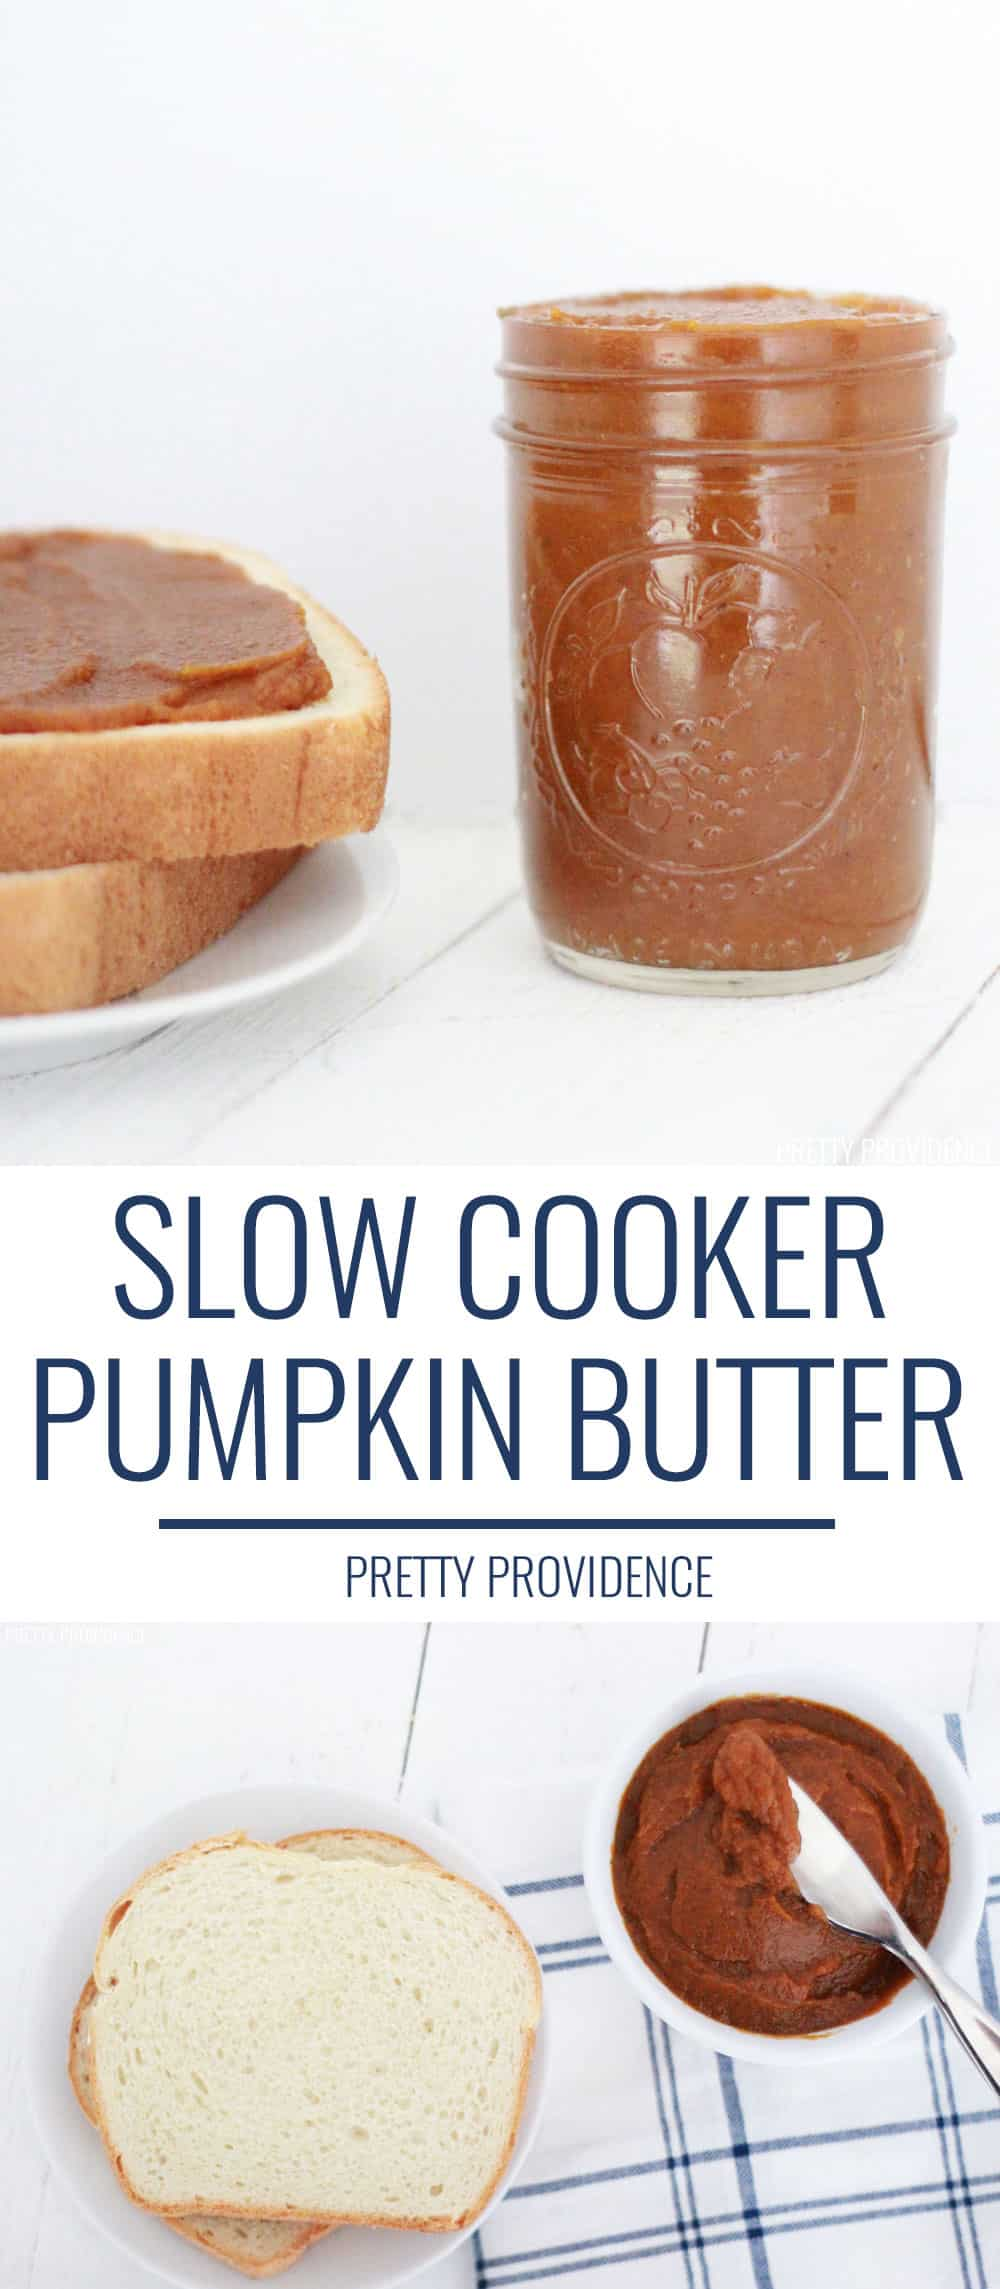 This homemade pumpkin butter is made in the slow cooker and the perfect fall pumpkin treat! It's so easy too!